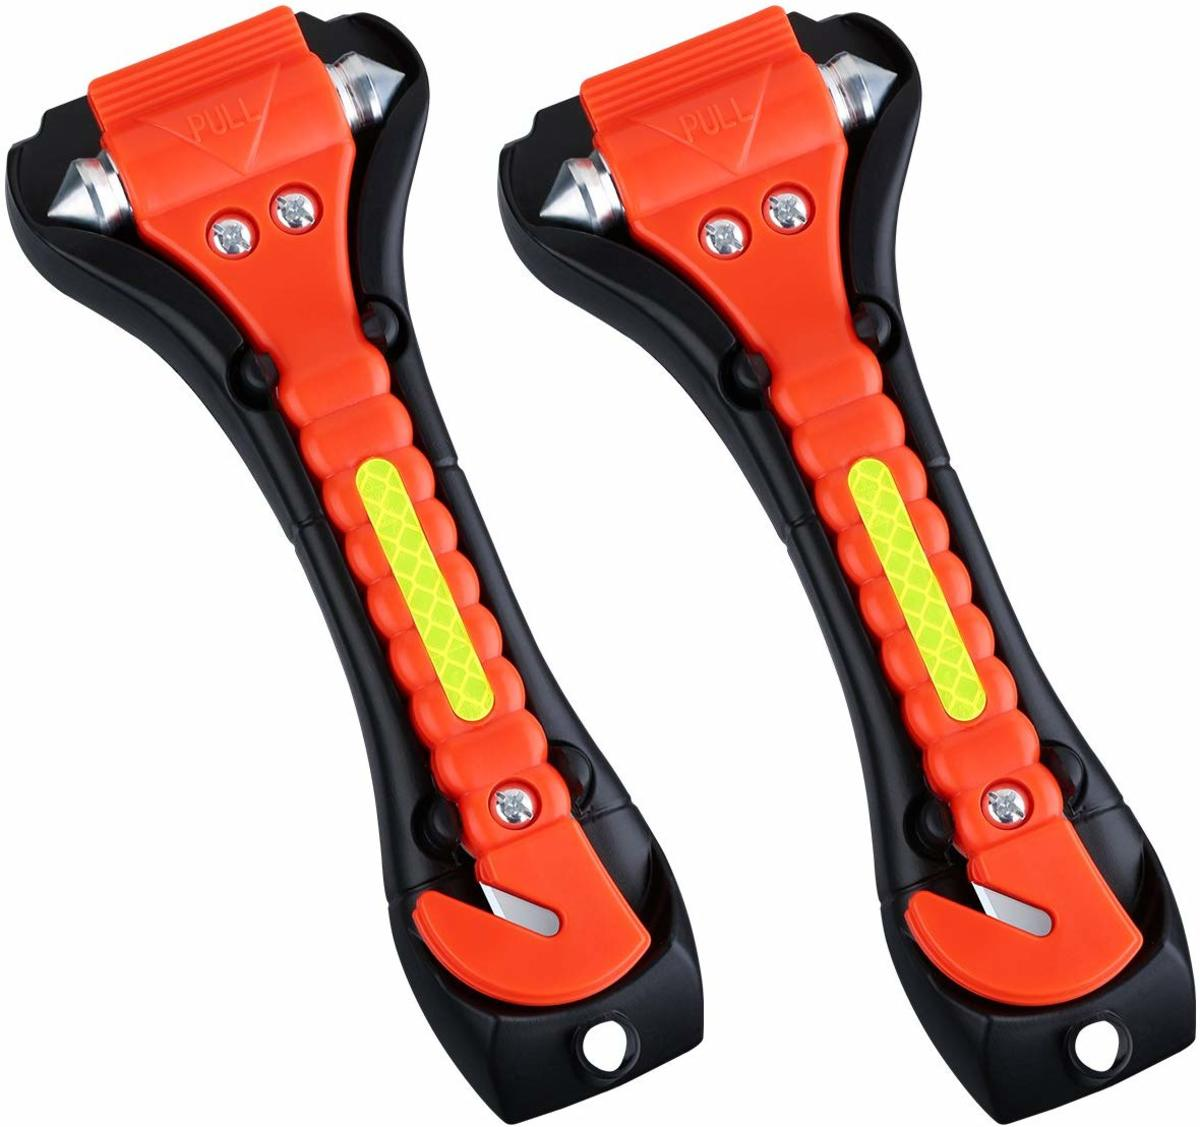 The VicTsing Safety Hammer, Emergency Escape Tool with Car Window Breaker and Seat Belt Cutter